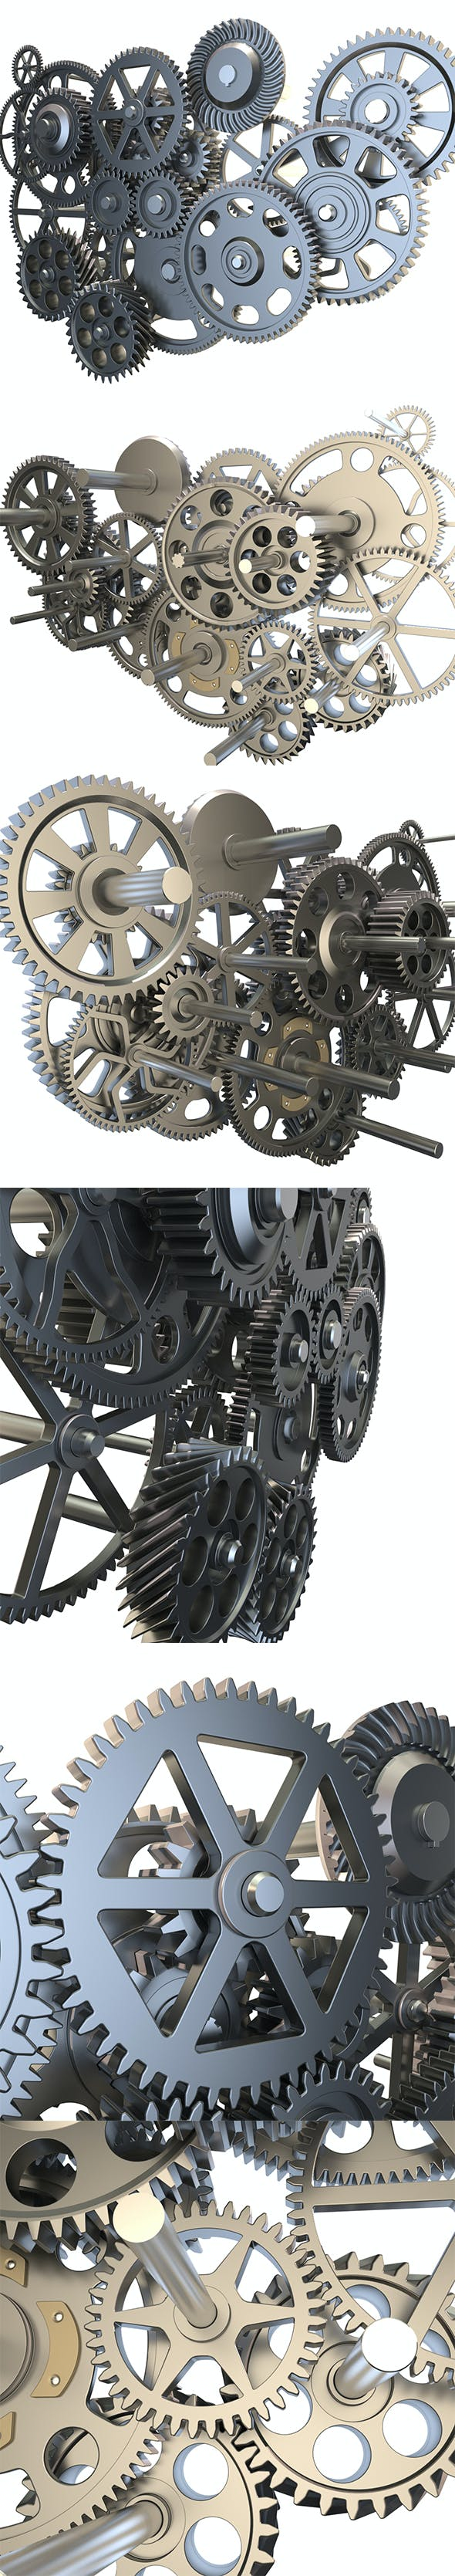 Gear mechanism set - 3DOcean Item for Sale